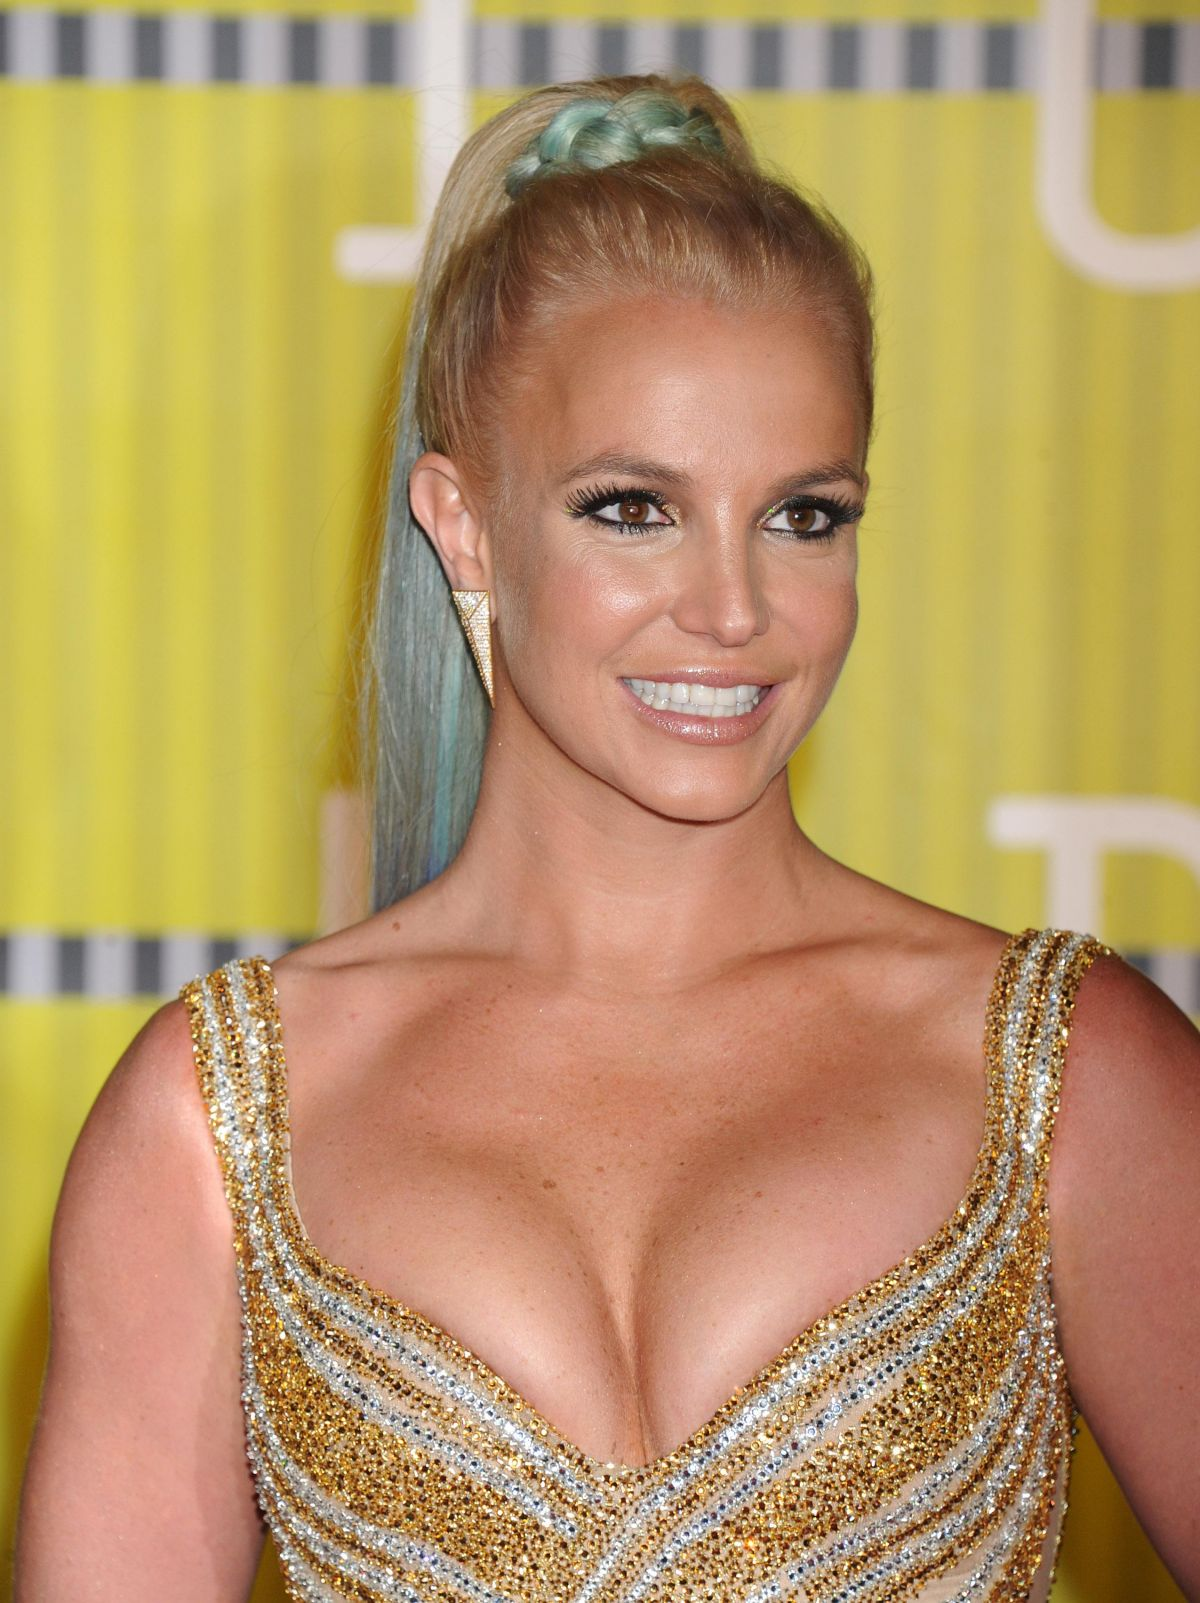 pictures-of-britney-spears-breasts-cleavage-cuba